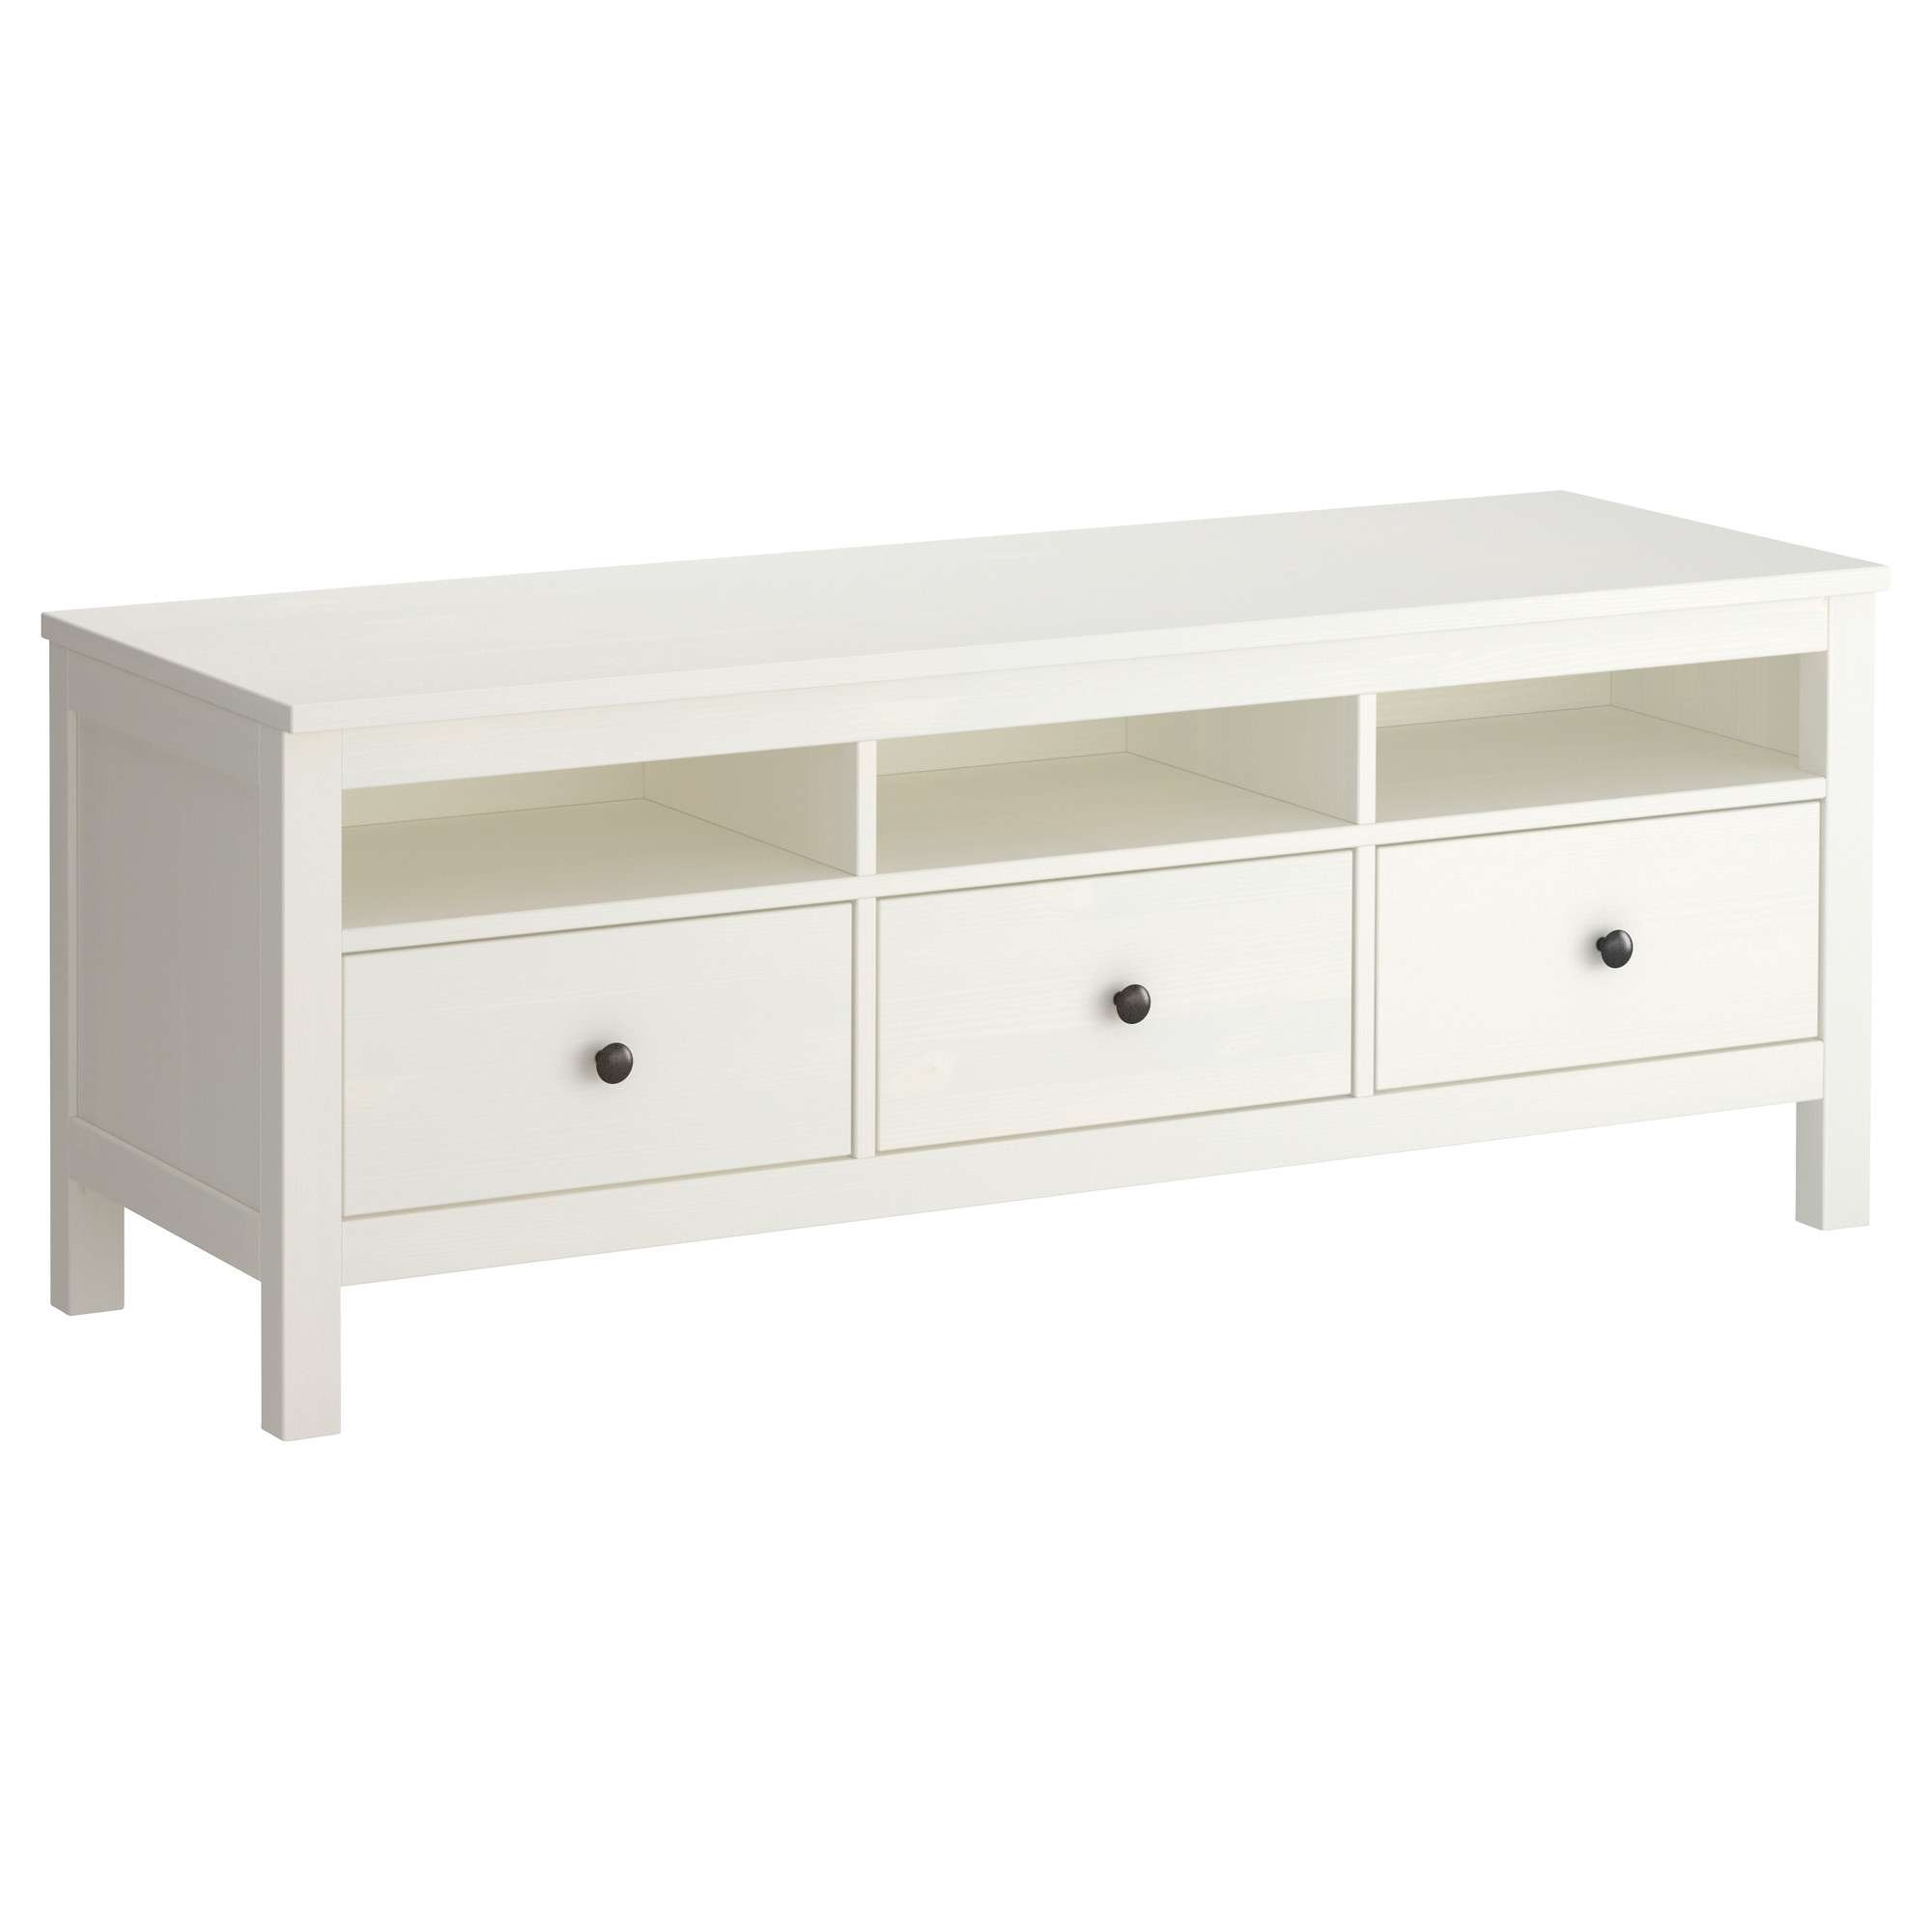 Hemnes Tv Bench White Stain 148x47 Cm – Ikea Throughout White And Wood Tv Stands (View 13 of 15)